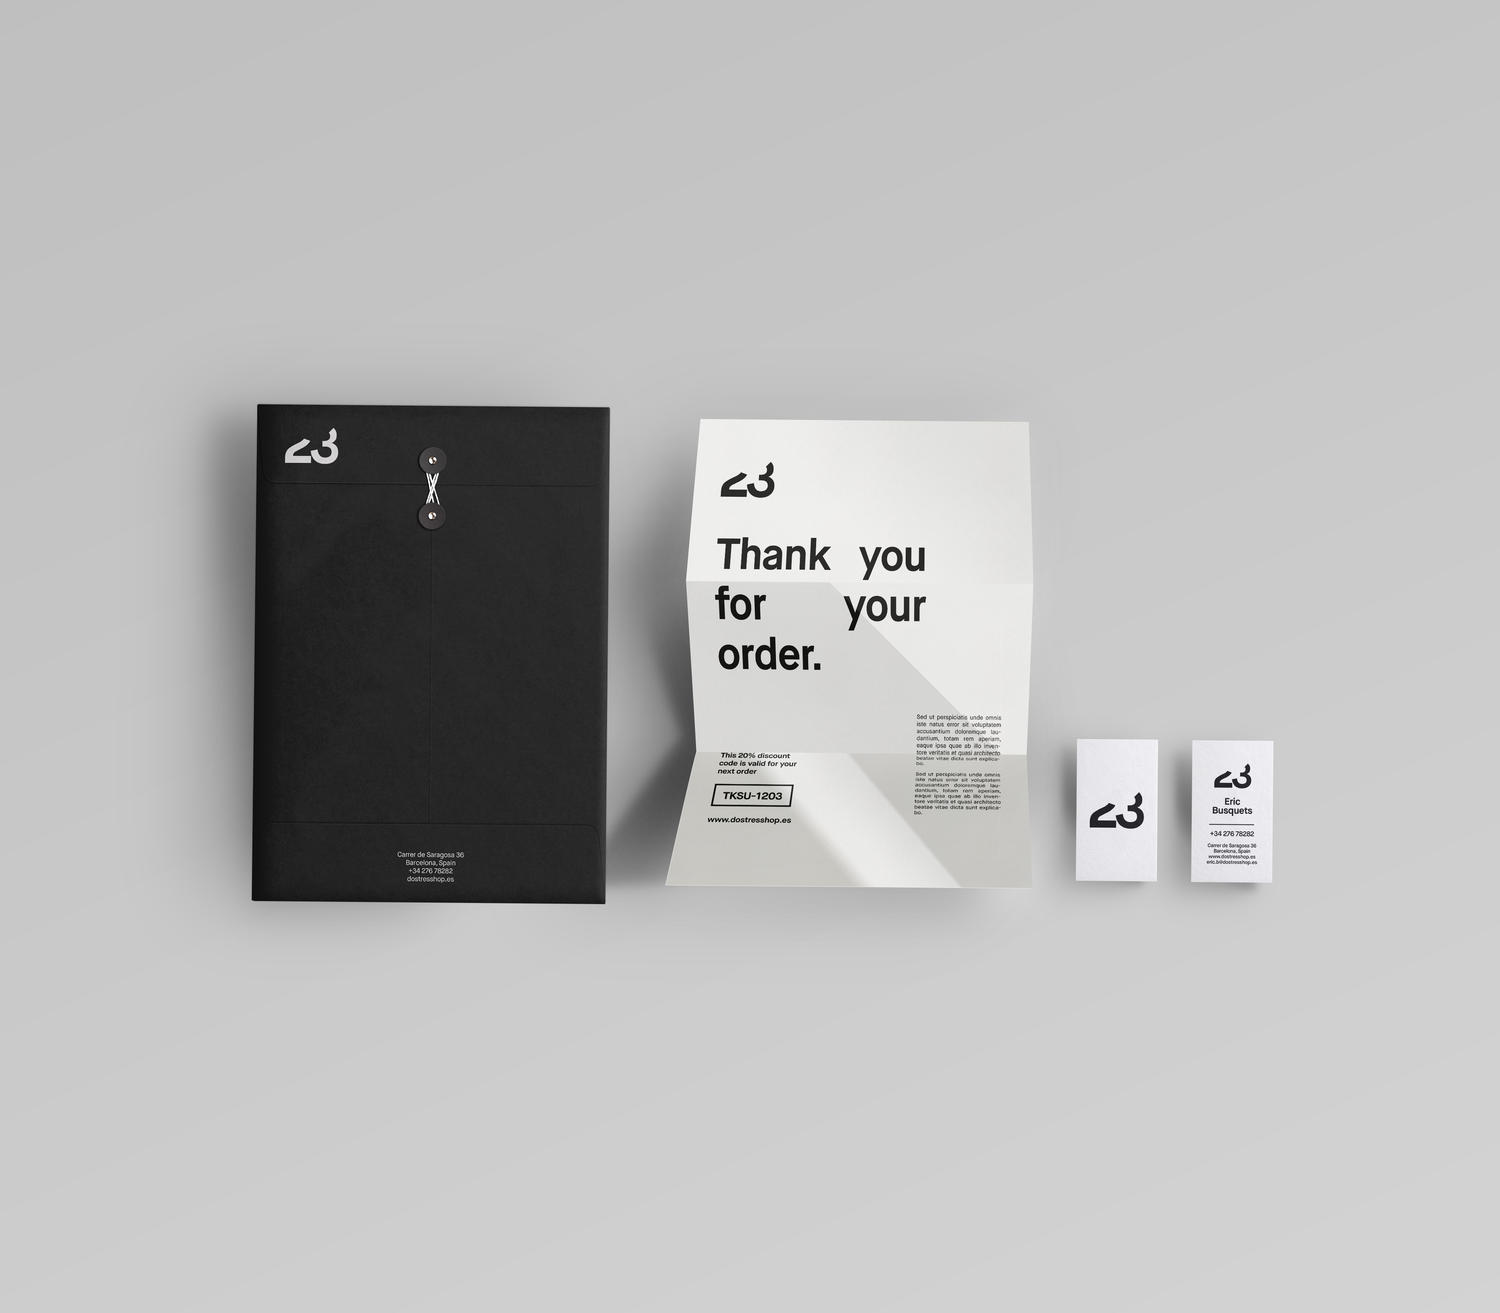 Clean Brand Identity Design (Logo + Stationery) by fat_and - 59339